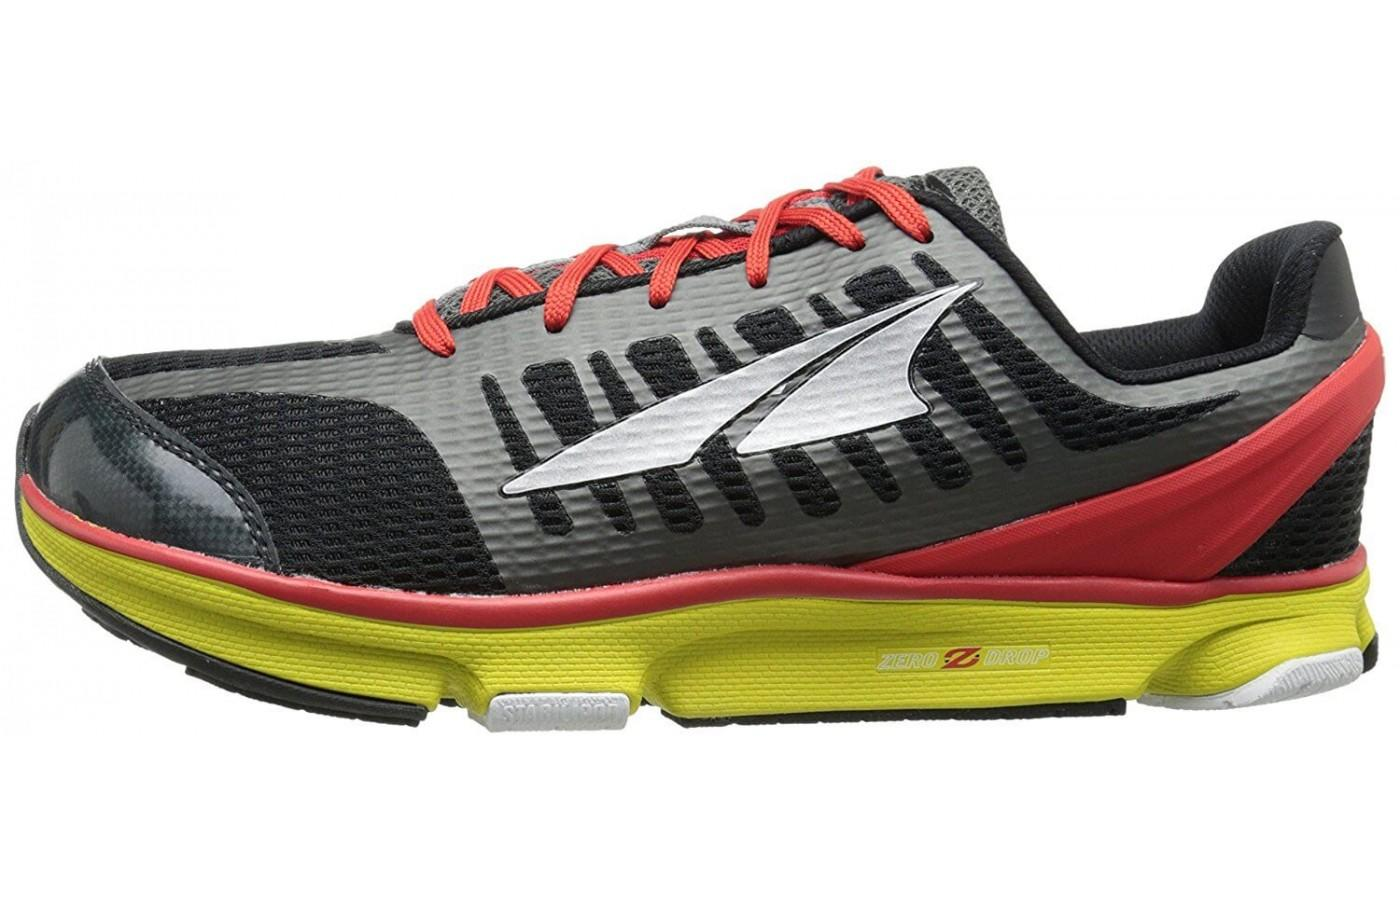 the Altra Provision 2 from the left